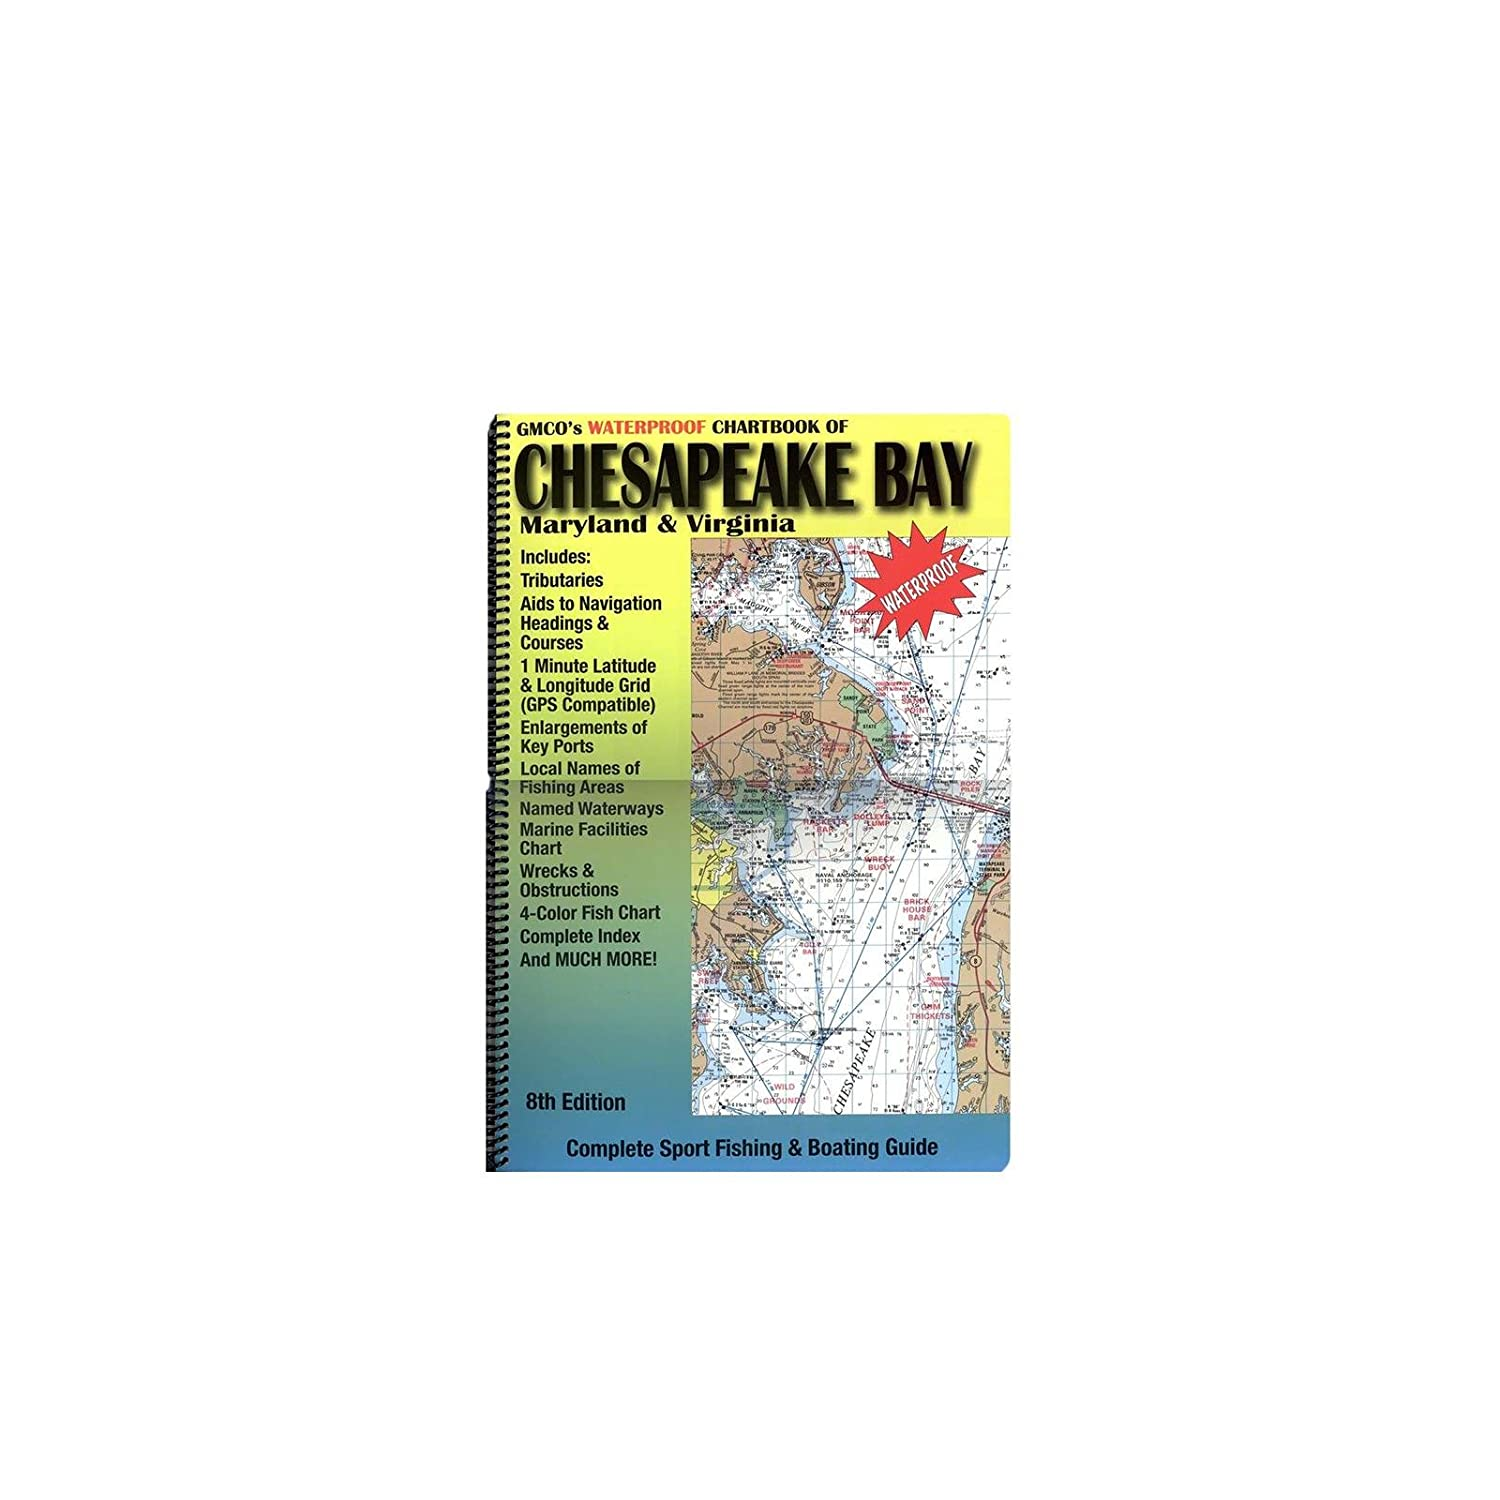 GMCO 14000 Chartbook for Chesapeake Bay, Maryland and Virginia by GMCO   B0084EHW5U